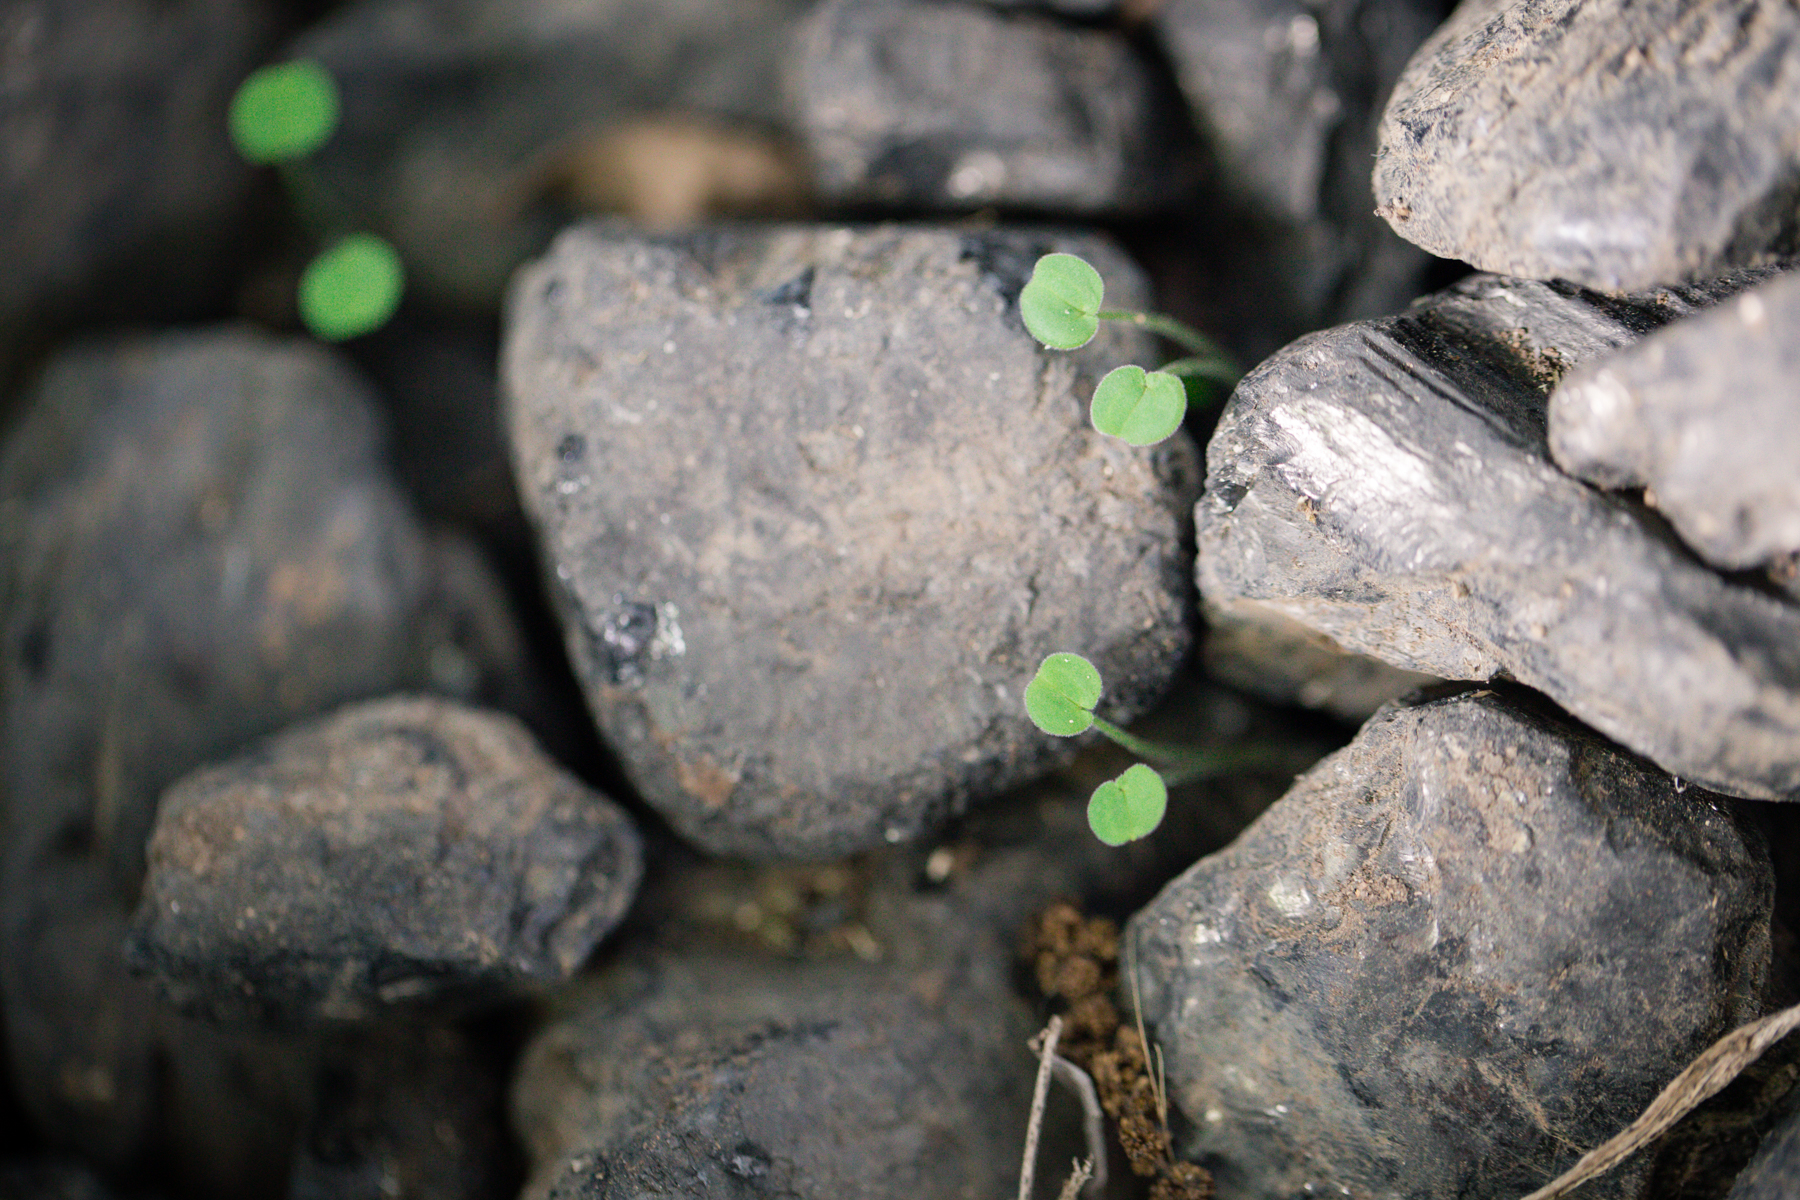 170 // 366 Growth in the coal pile